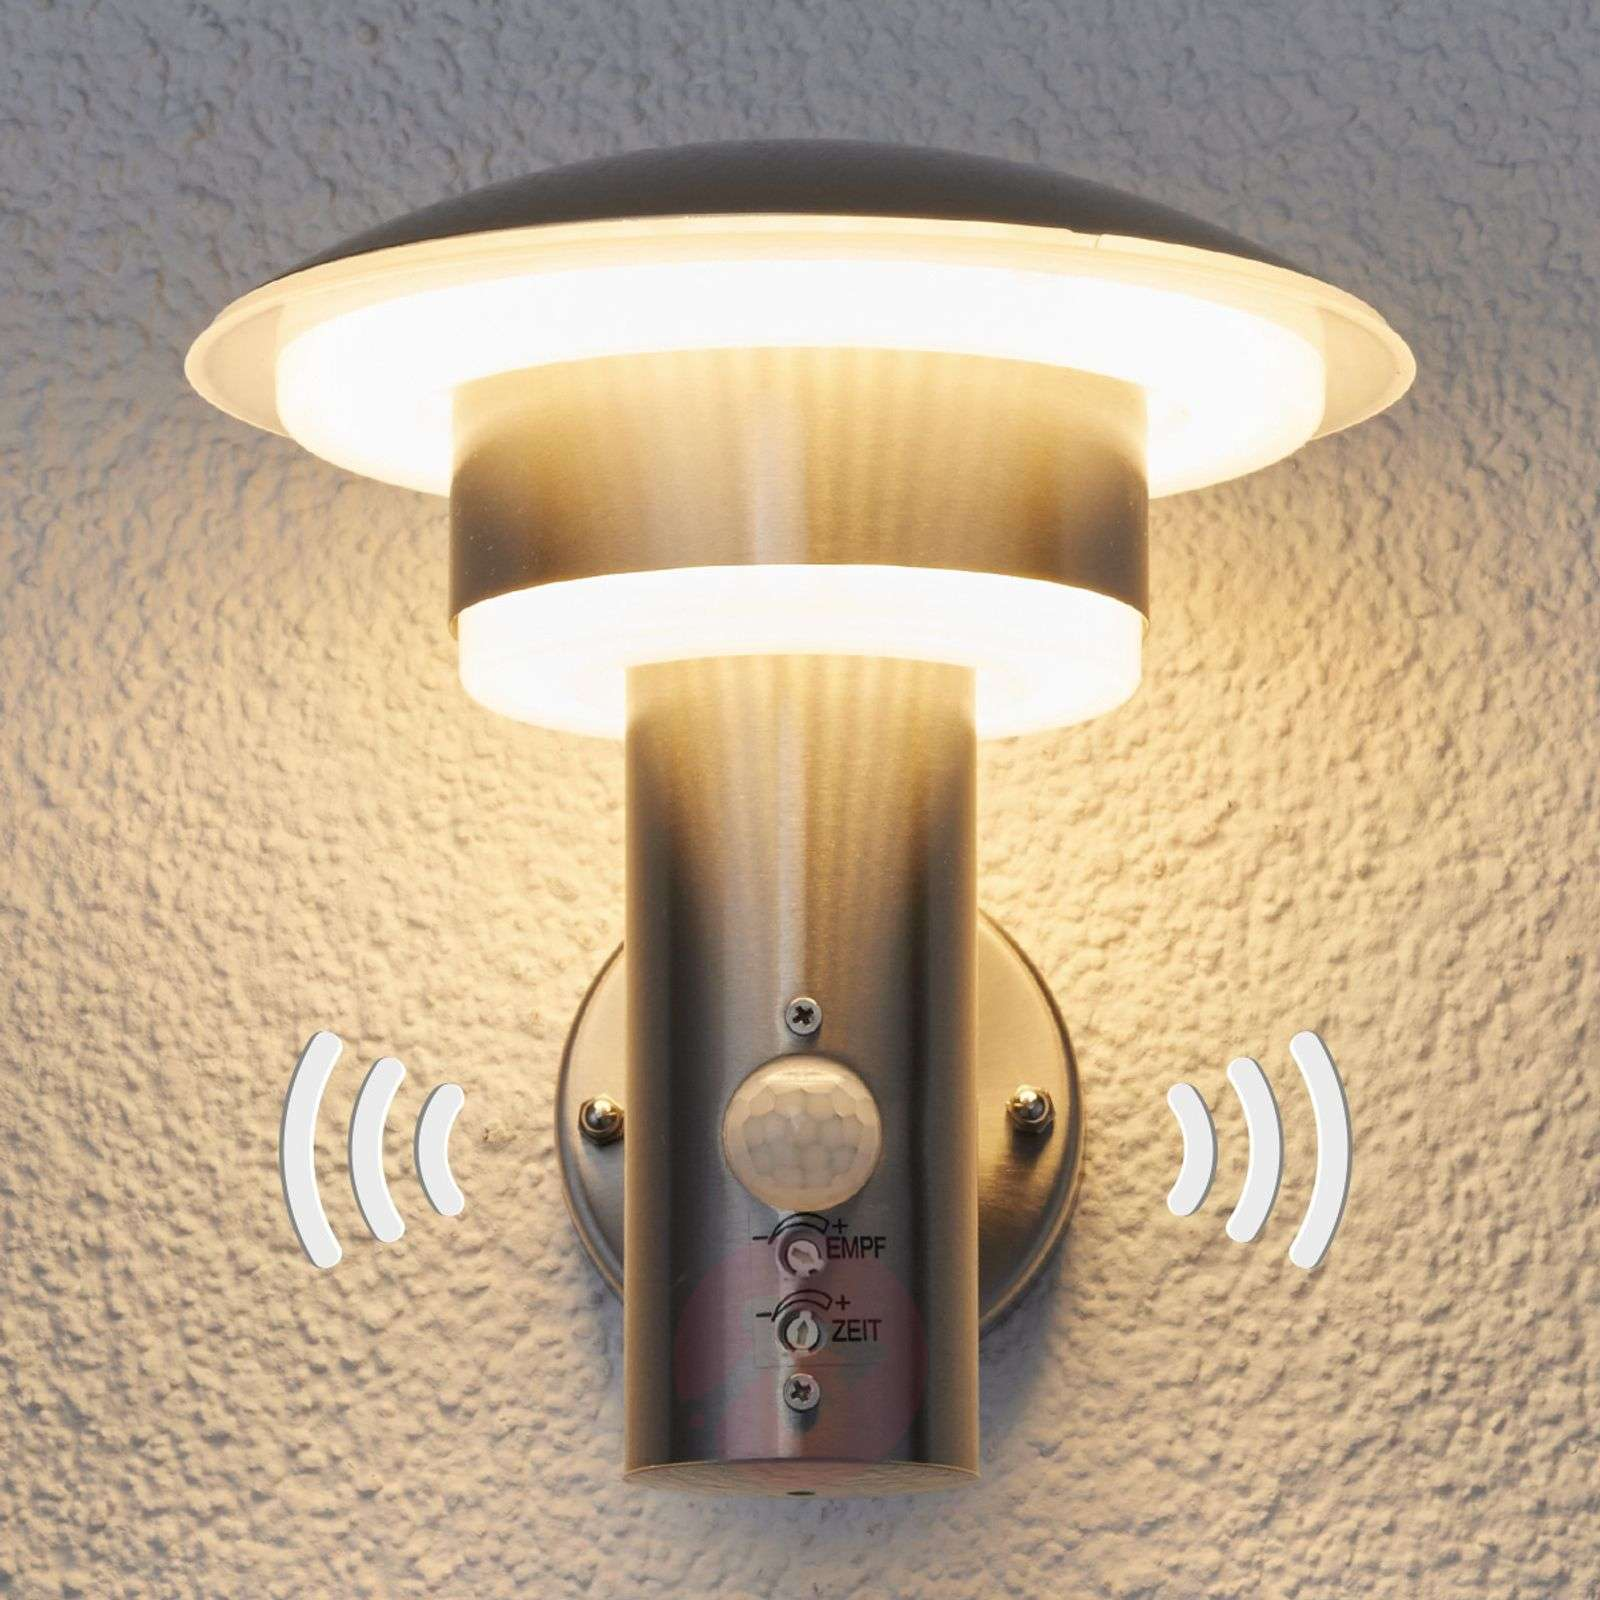 PIR outdoor wall light Lillie with LEDs-9988018-01